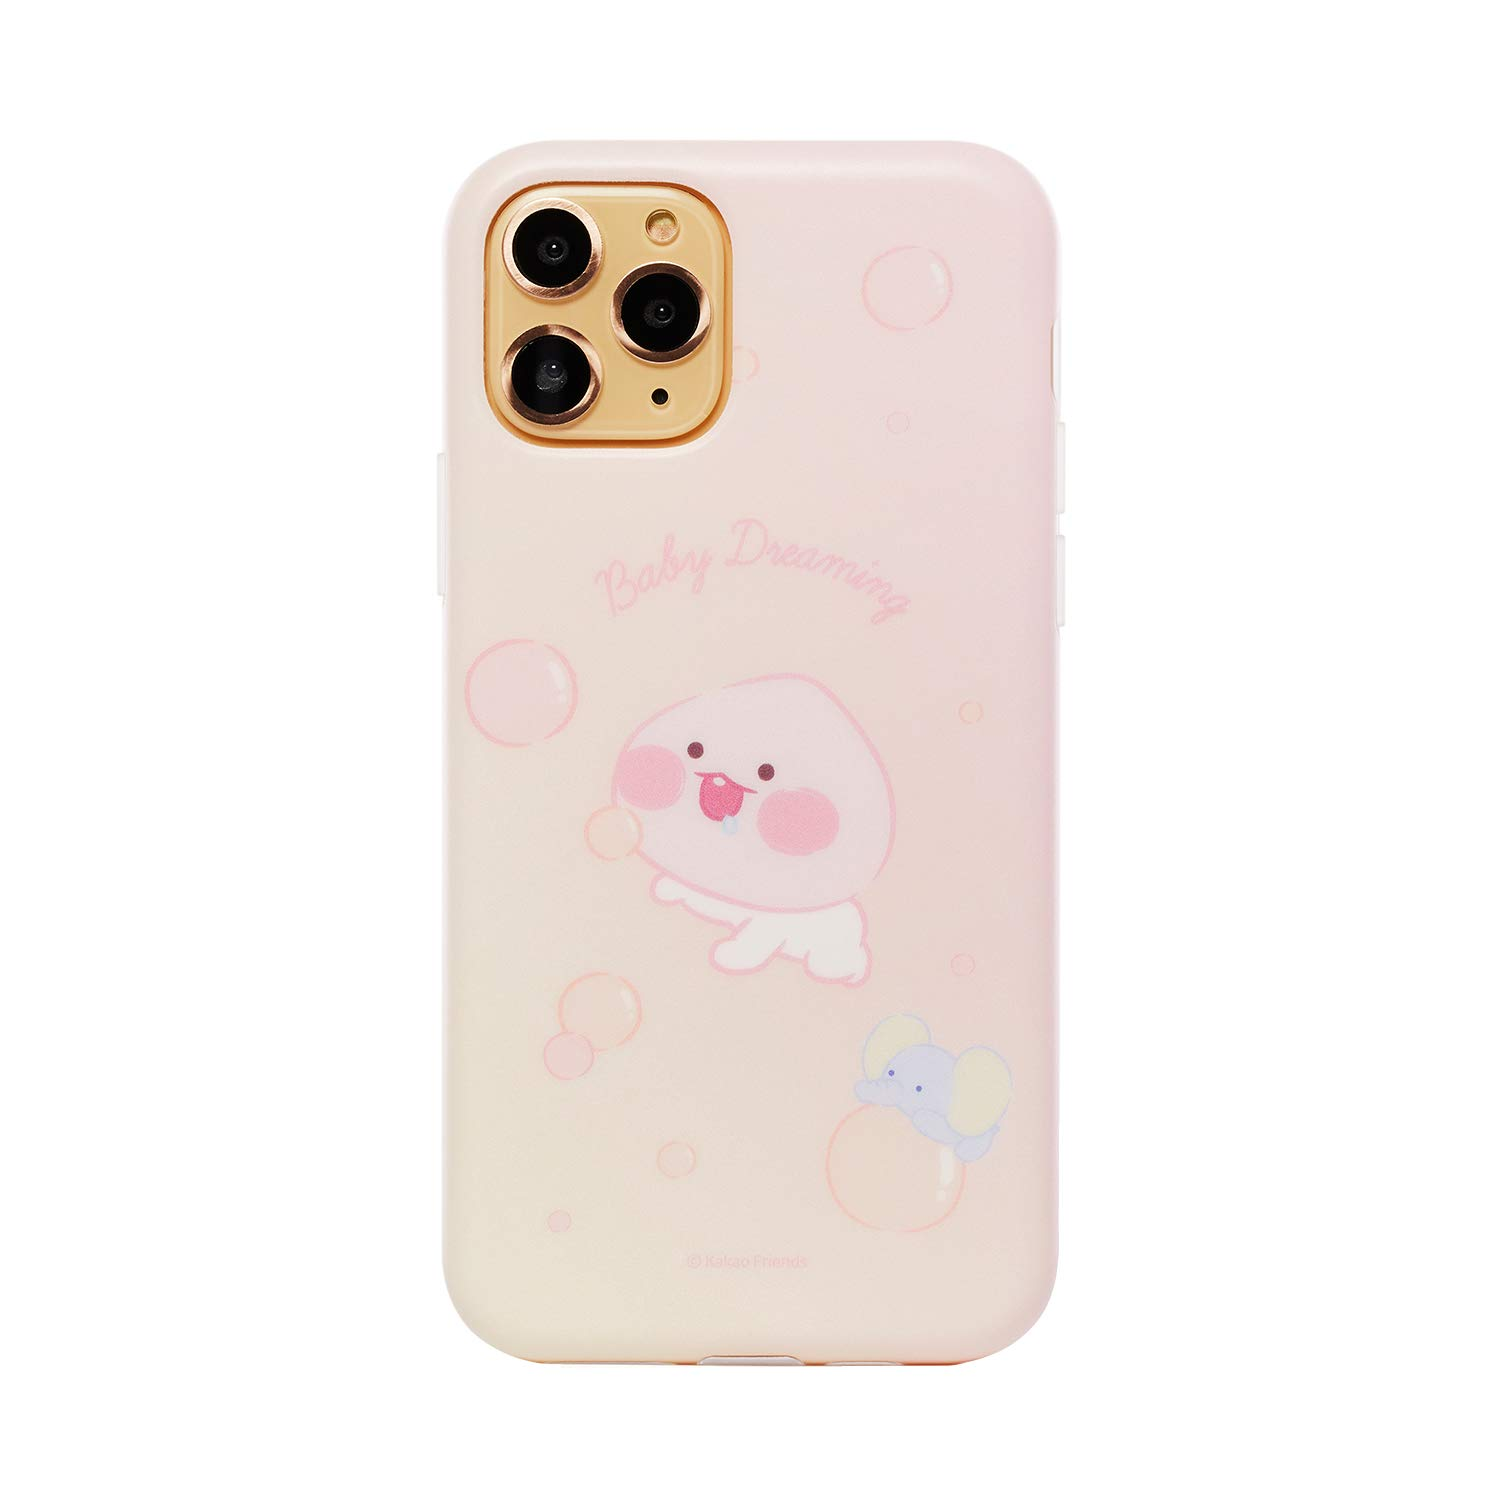 KAKAO FRIENDS Official- Baby Dreaming TPU Cell Phone Case, Compatible with iPhone (Little Apeach, iPhone 11 Pro)